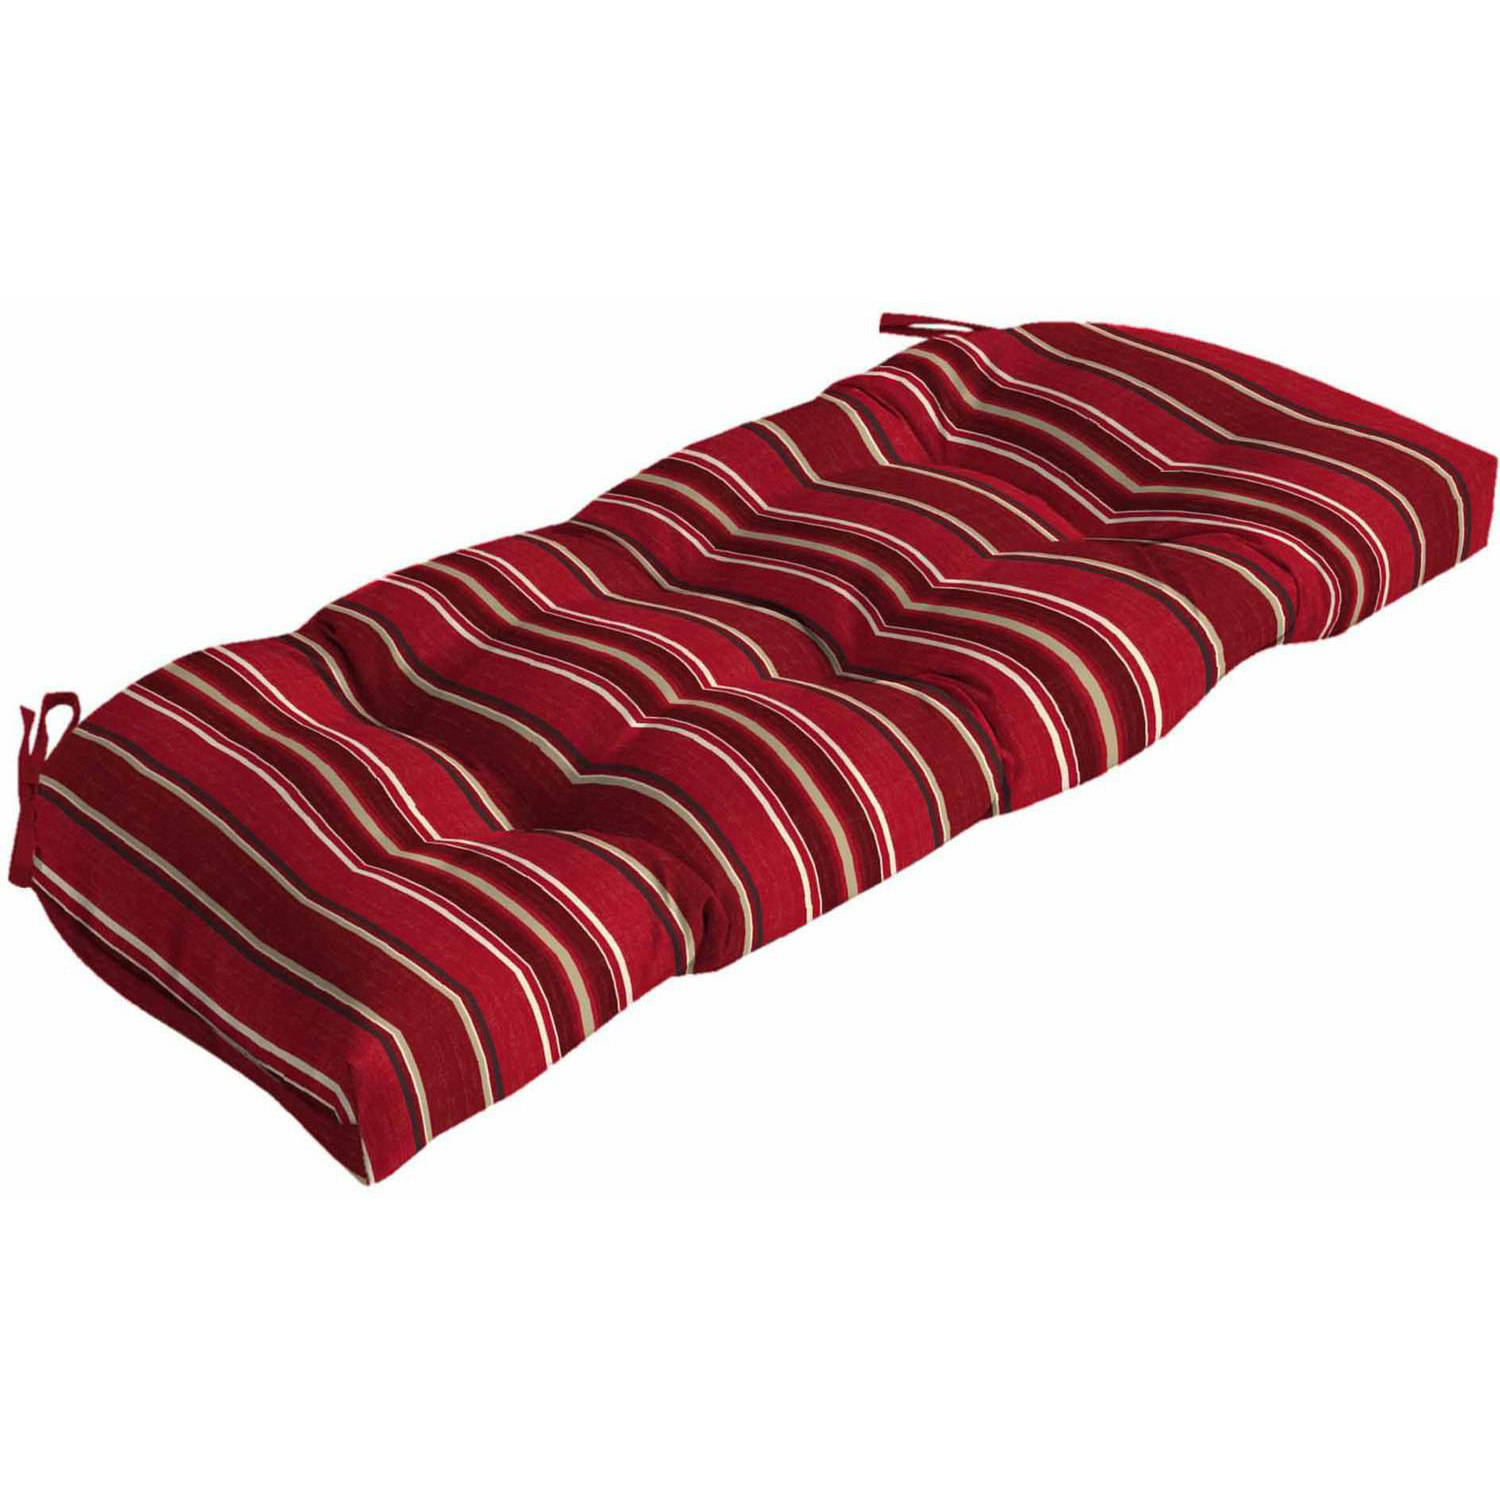 Better Homes and Gardens Outdoor Patio Wicker Settee Cushion, Multiple Patterns